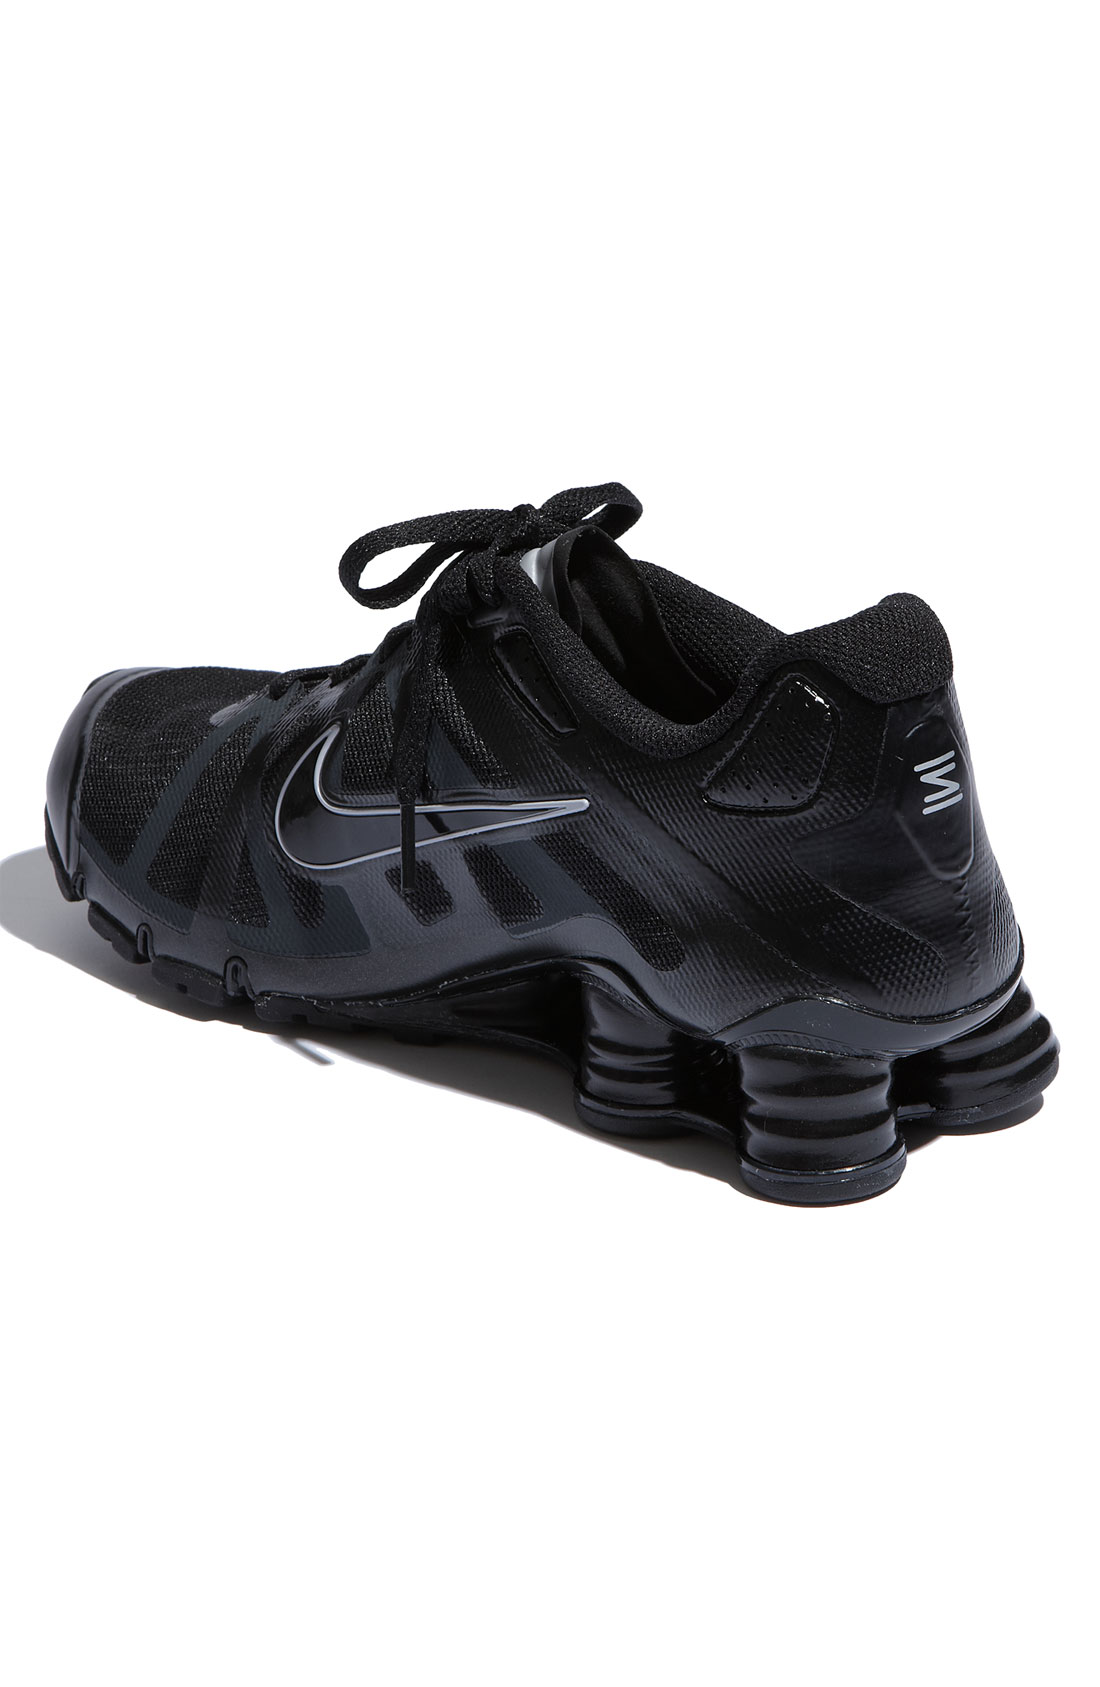 best cheap 1d250 a5219 ... PretoLaranja nike shox roadster black Nike Shox Roadster Trail Running  Shoe in Black for Men Lyst ...